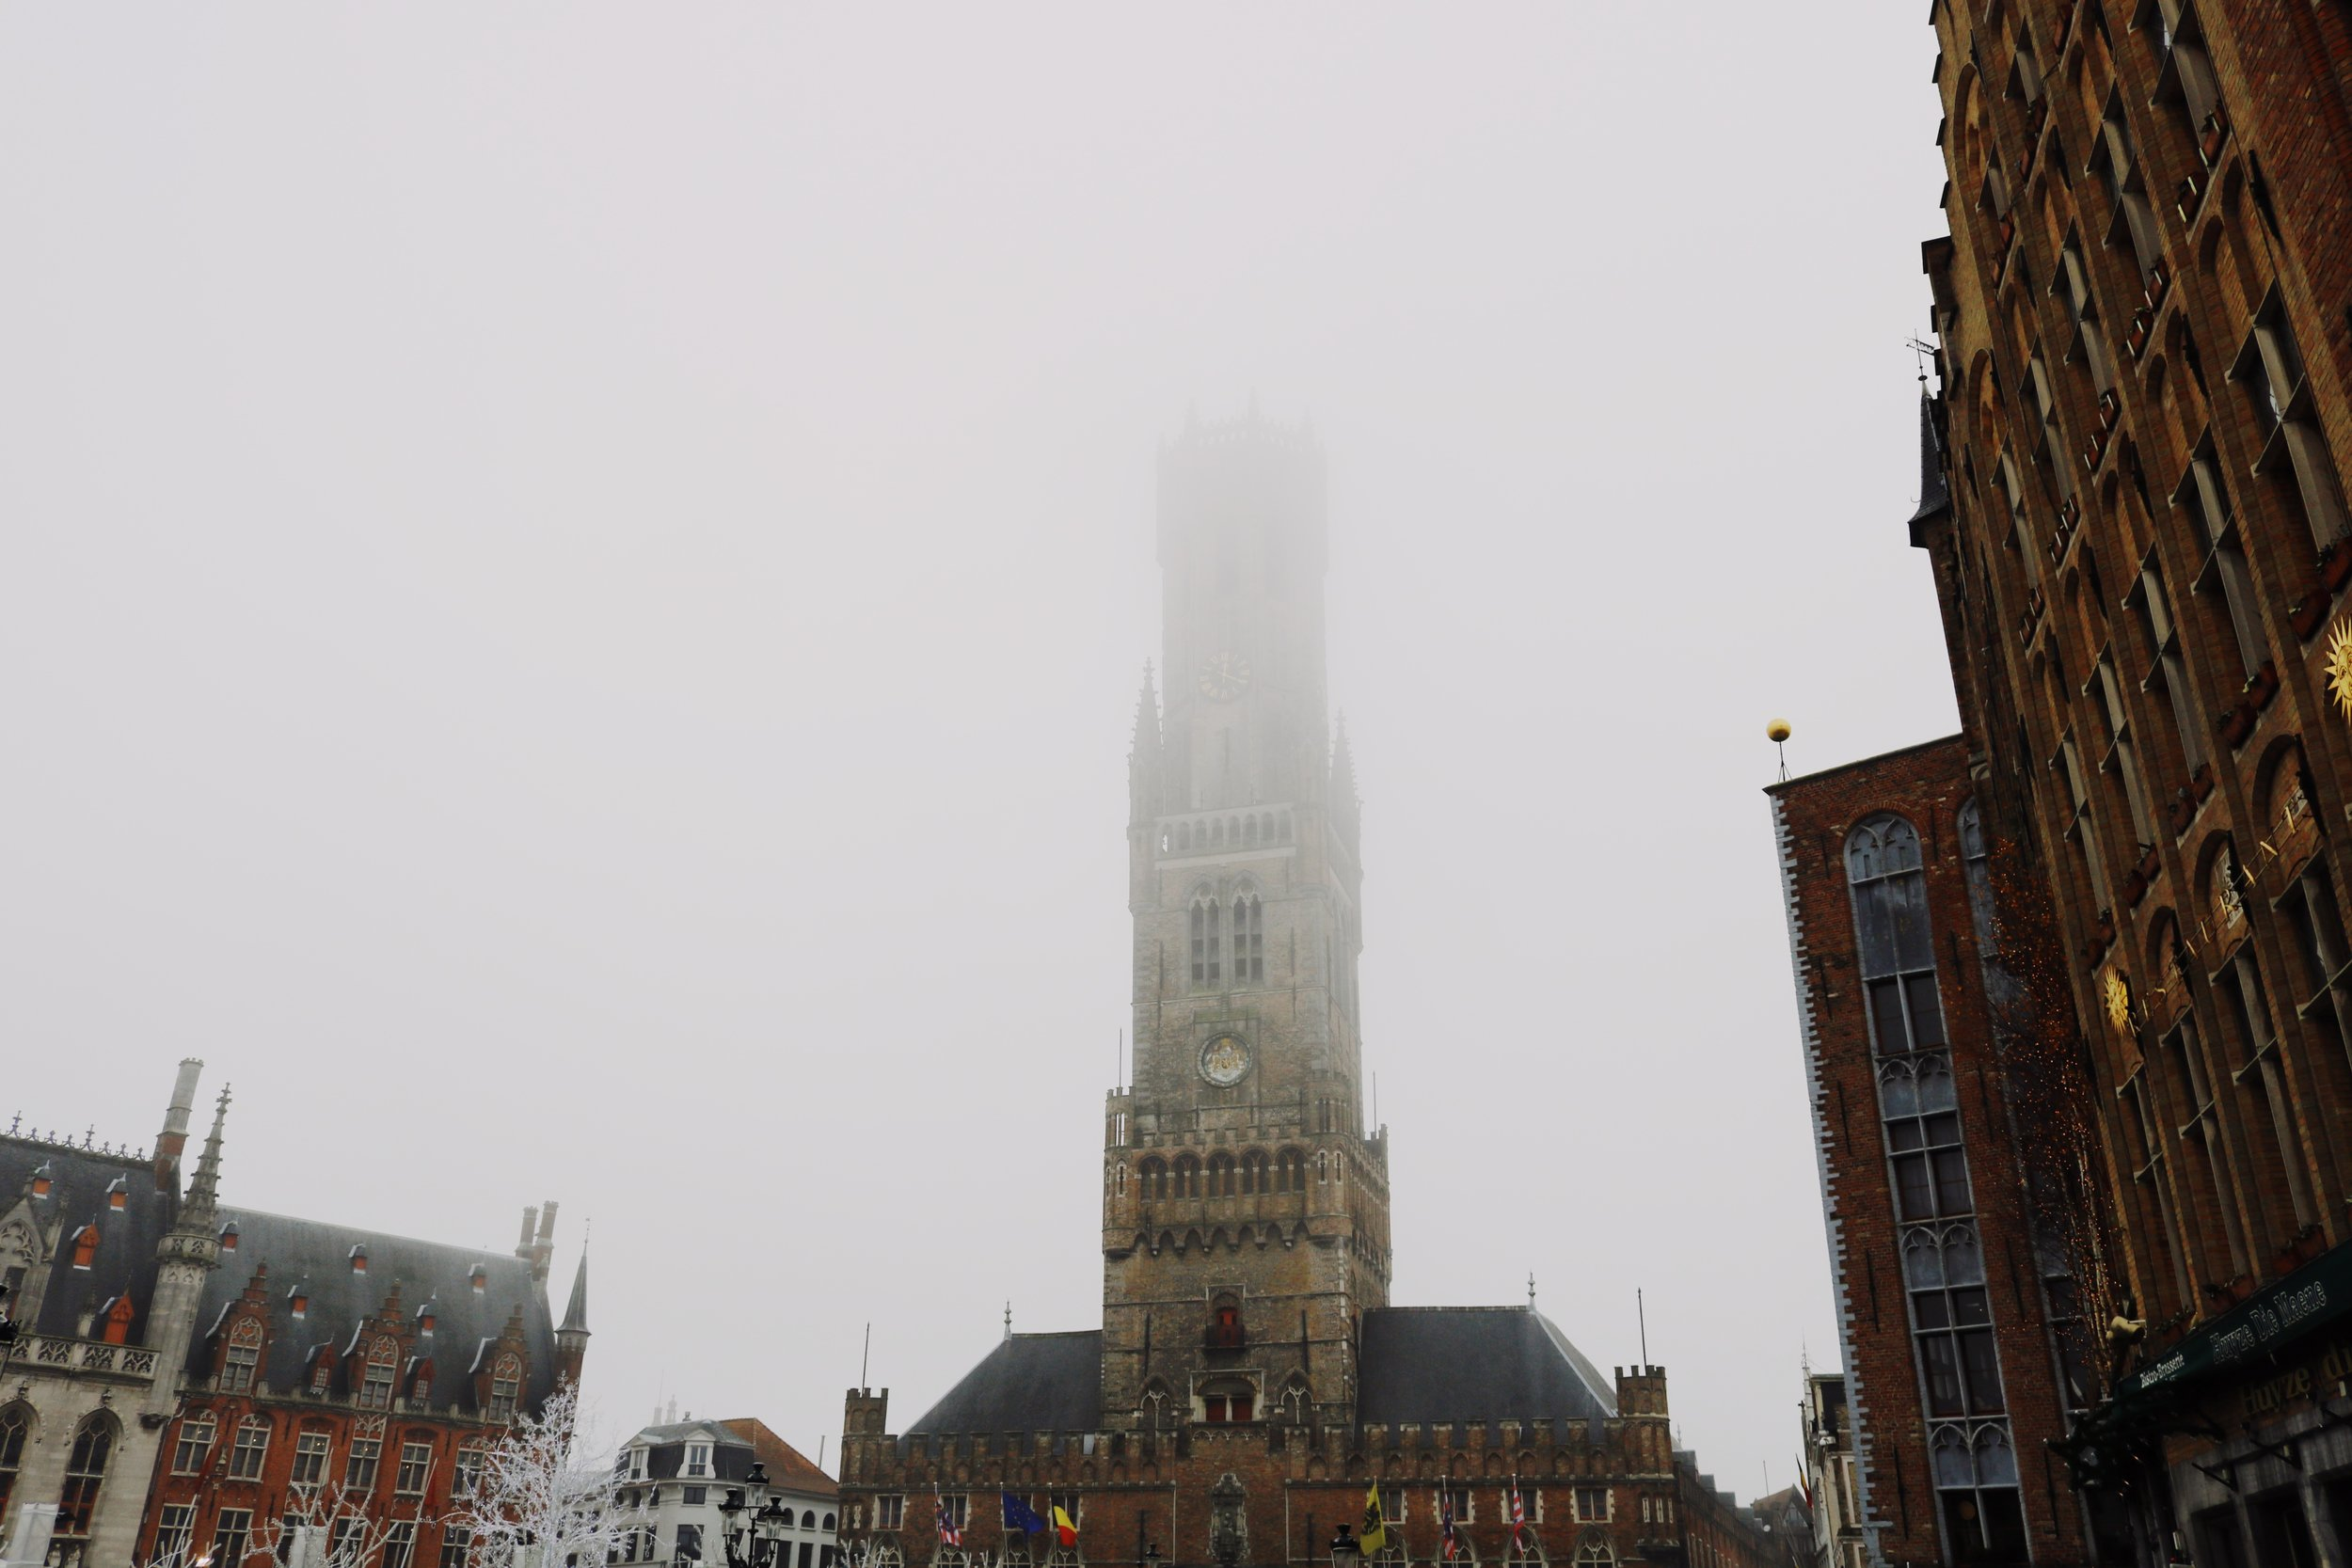 The clock-tower in Bruges city center